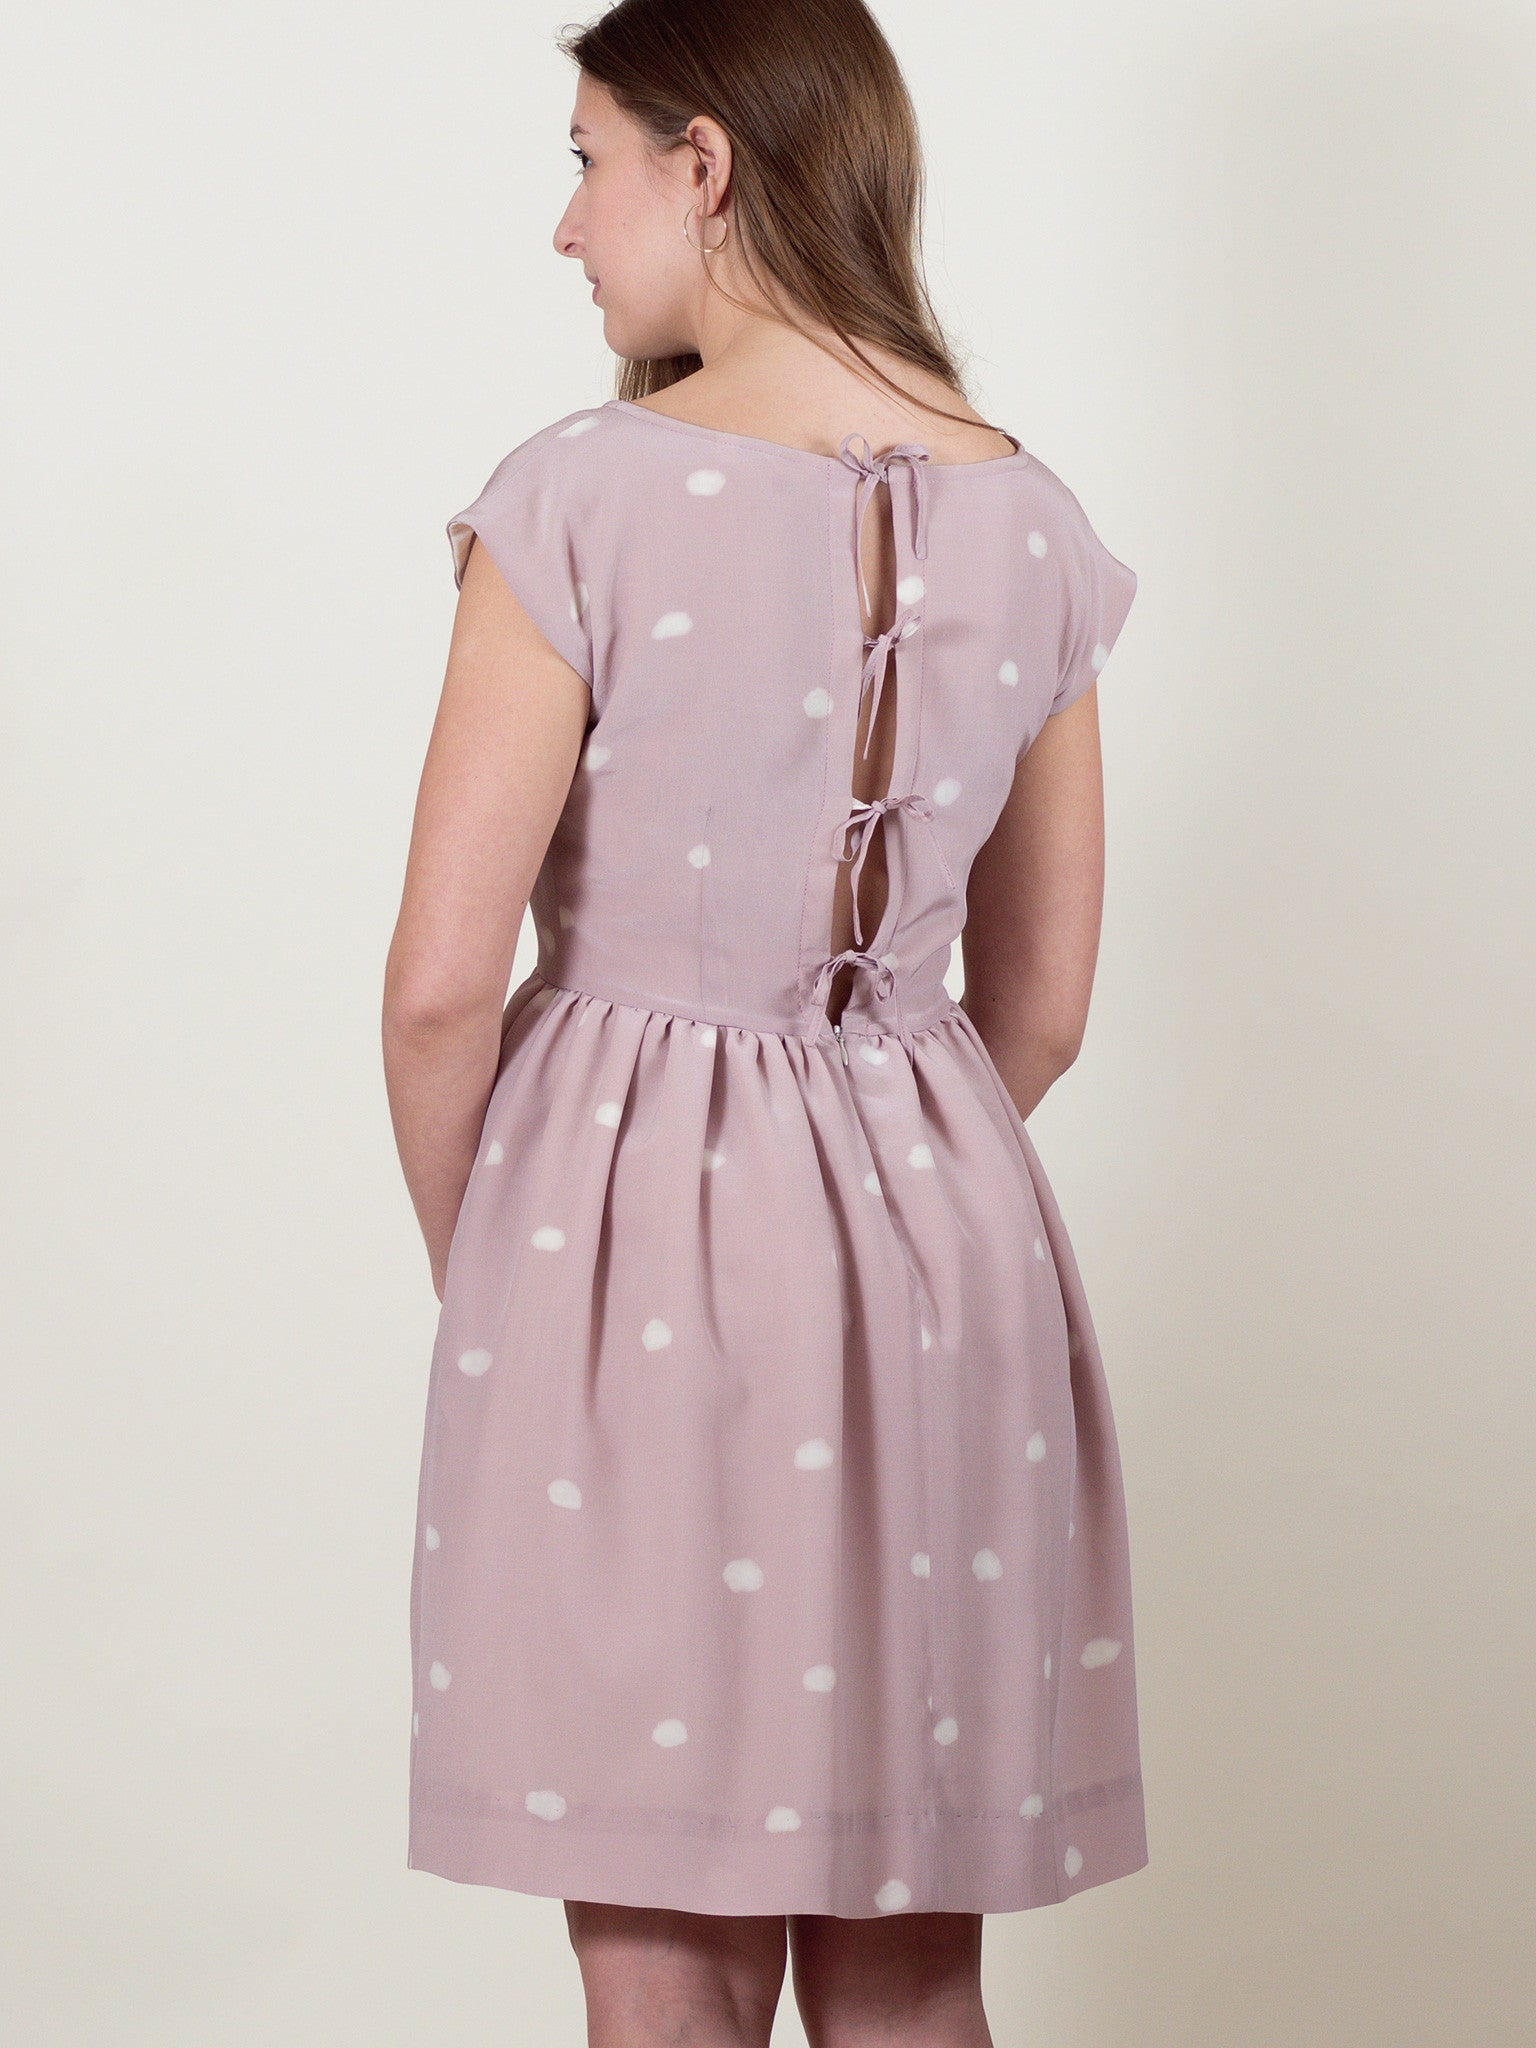 Meadow Dress in Pink Cloud